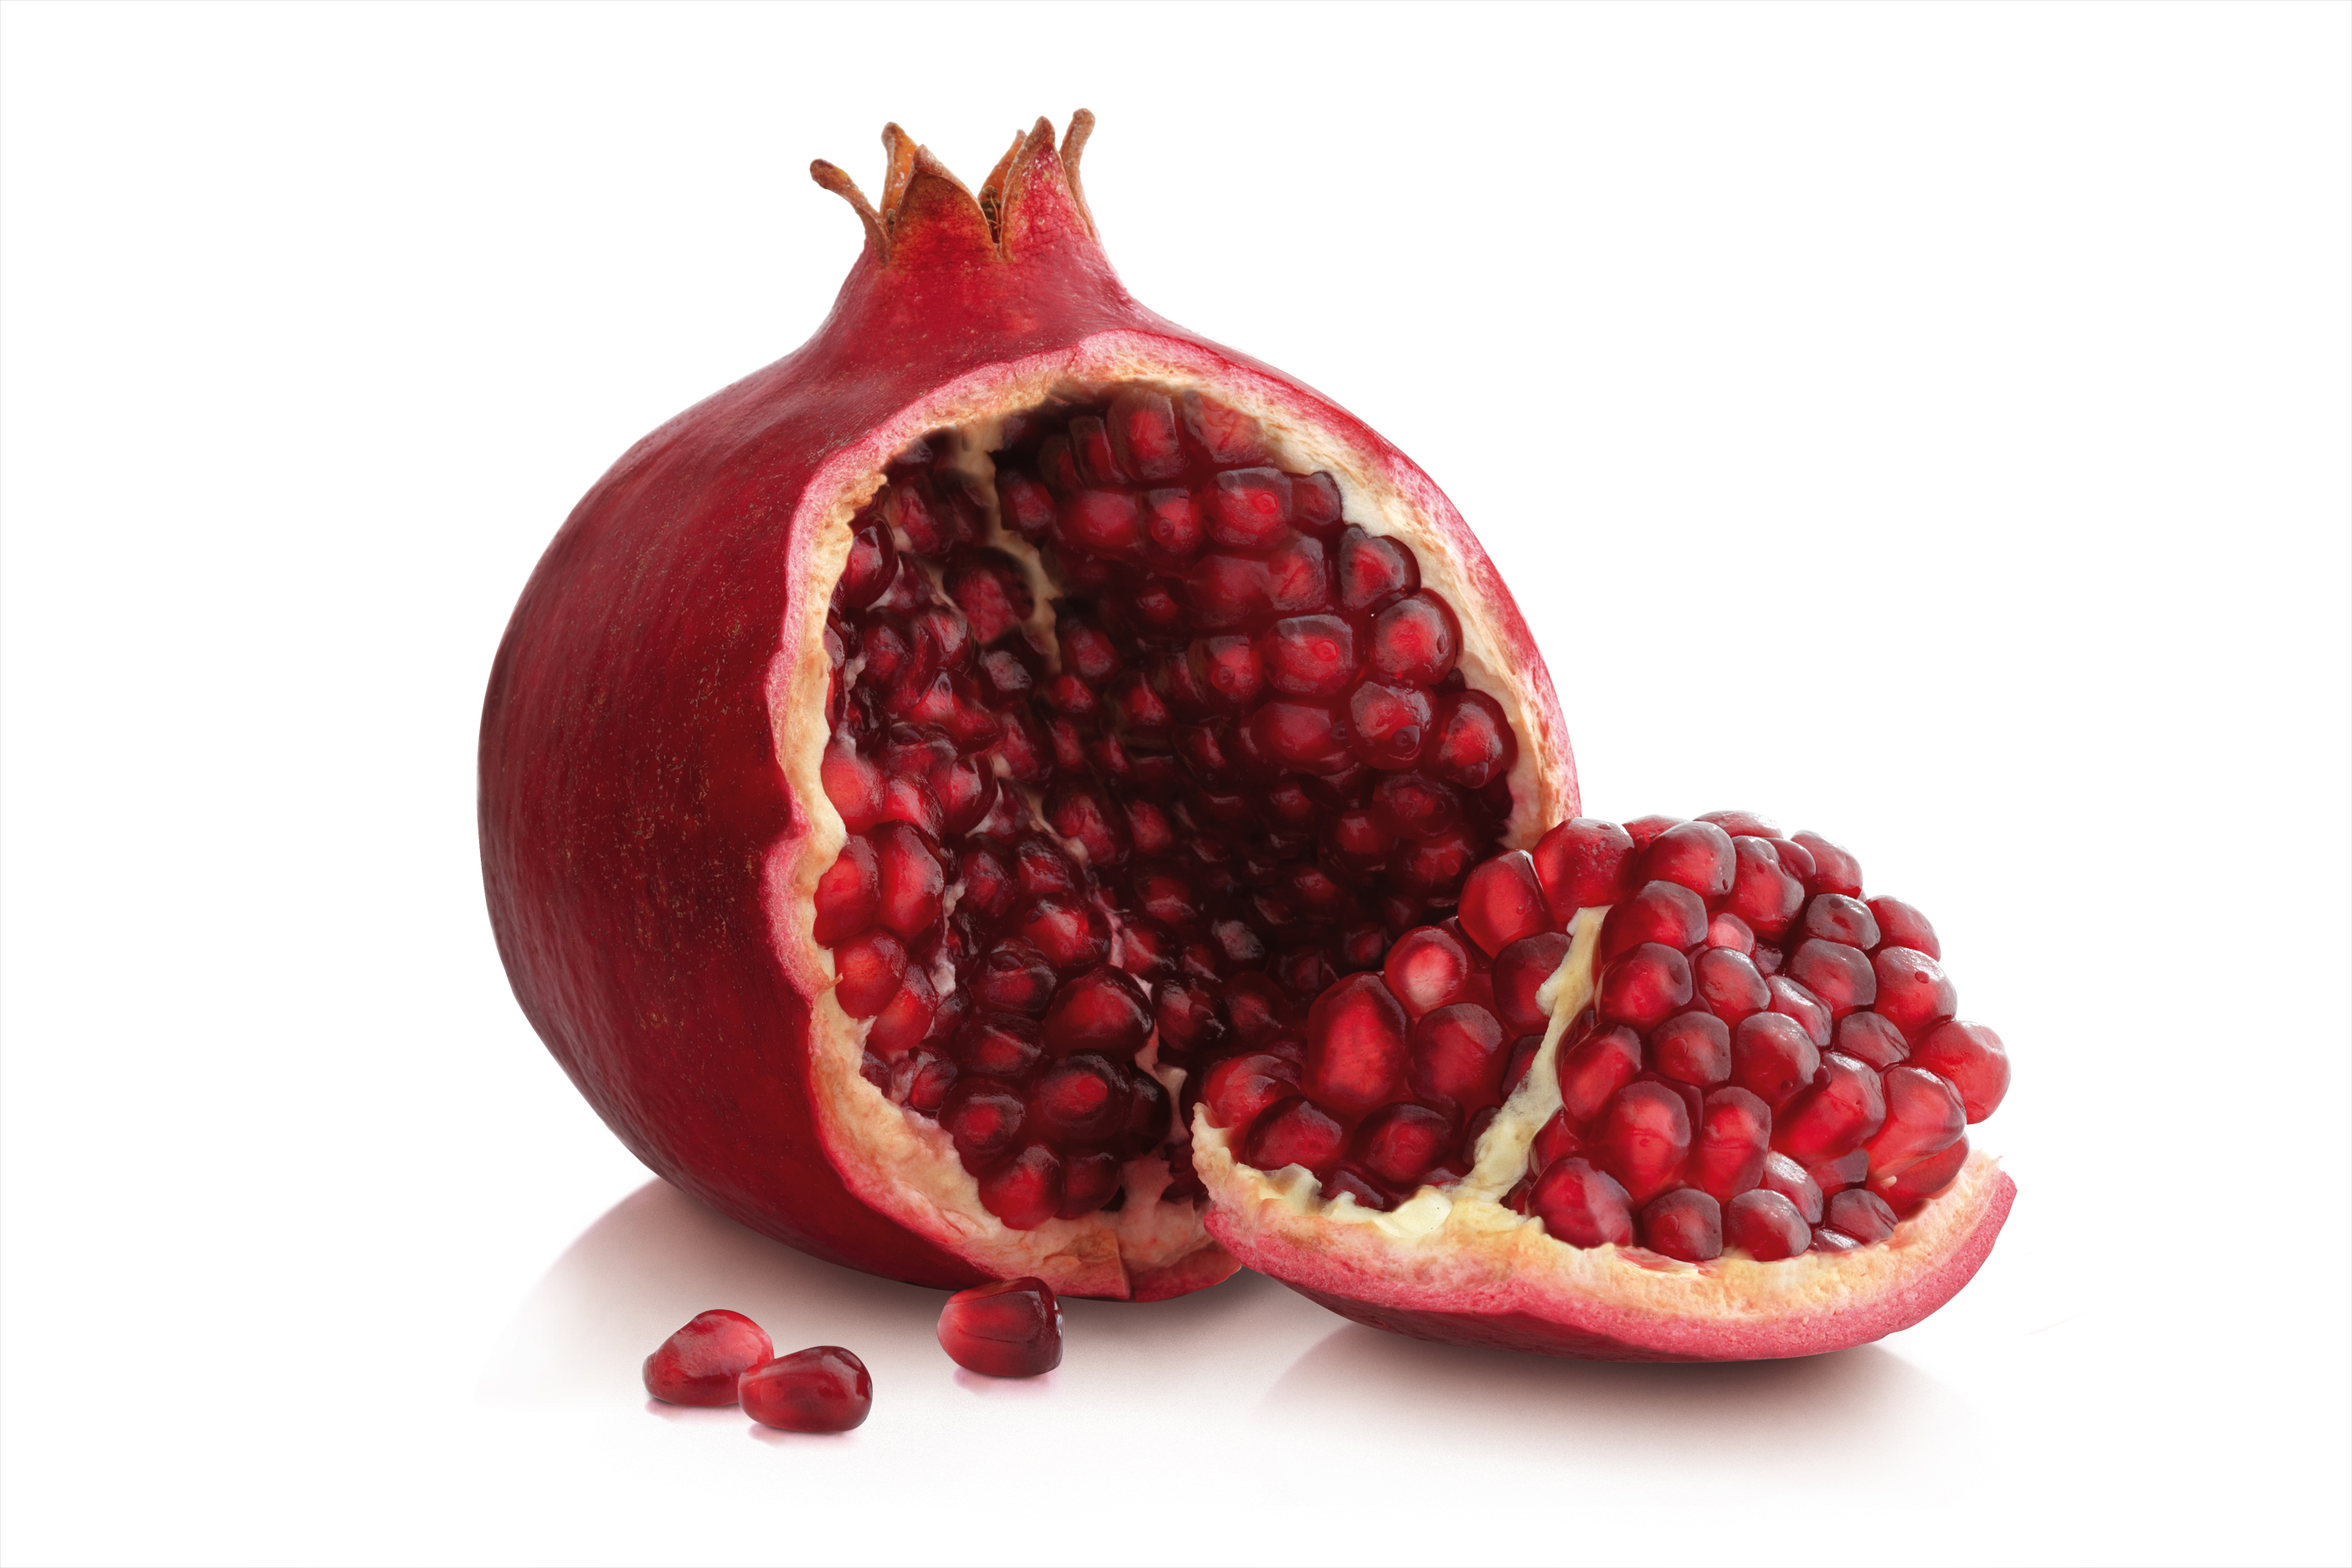 pomegranate whole cut open